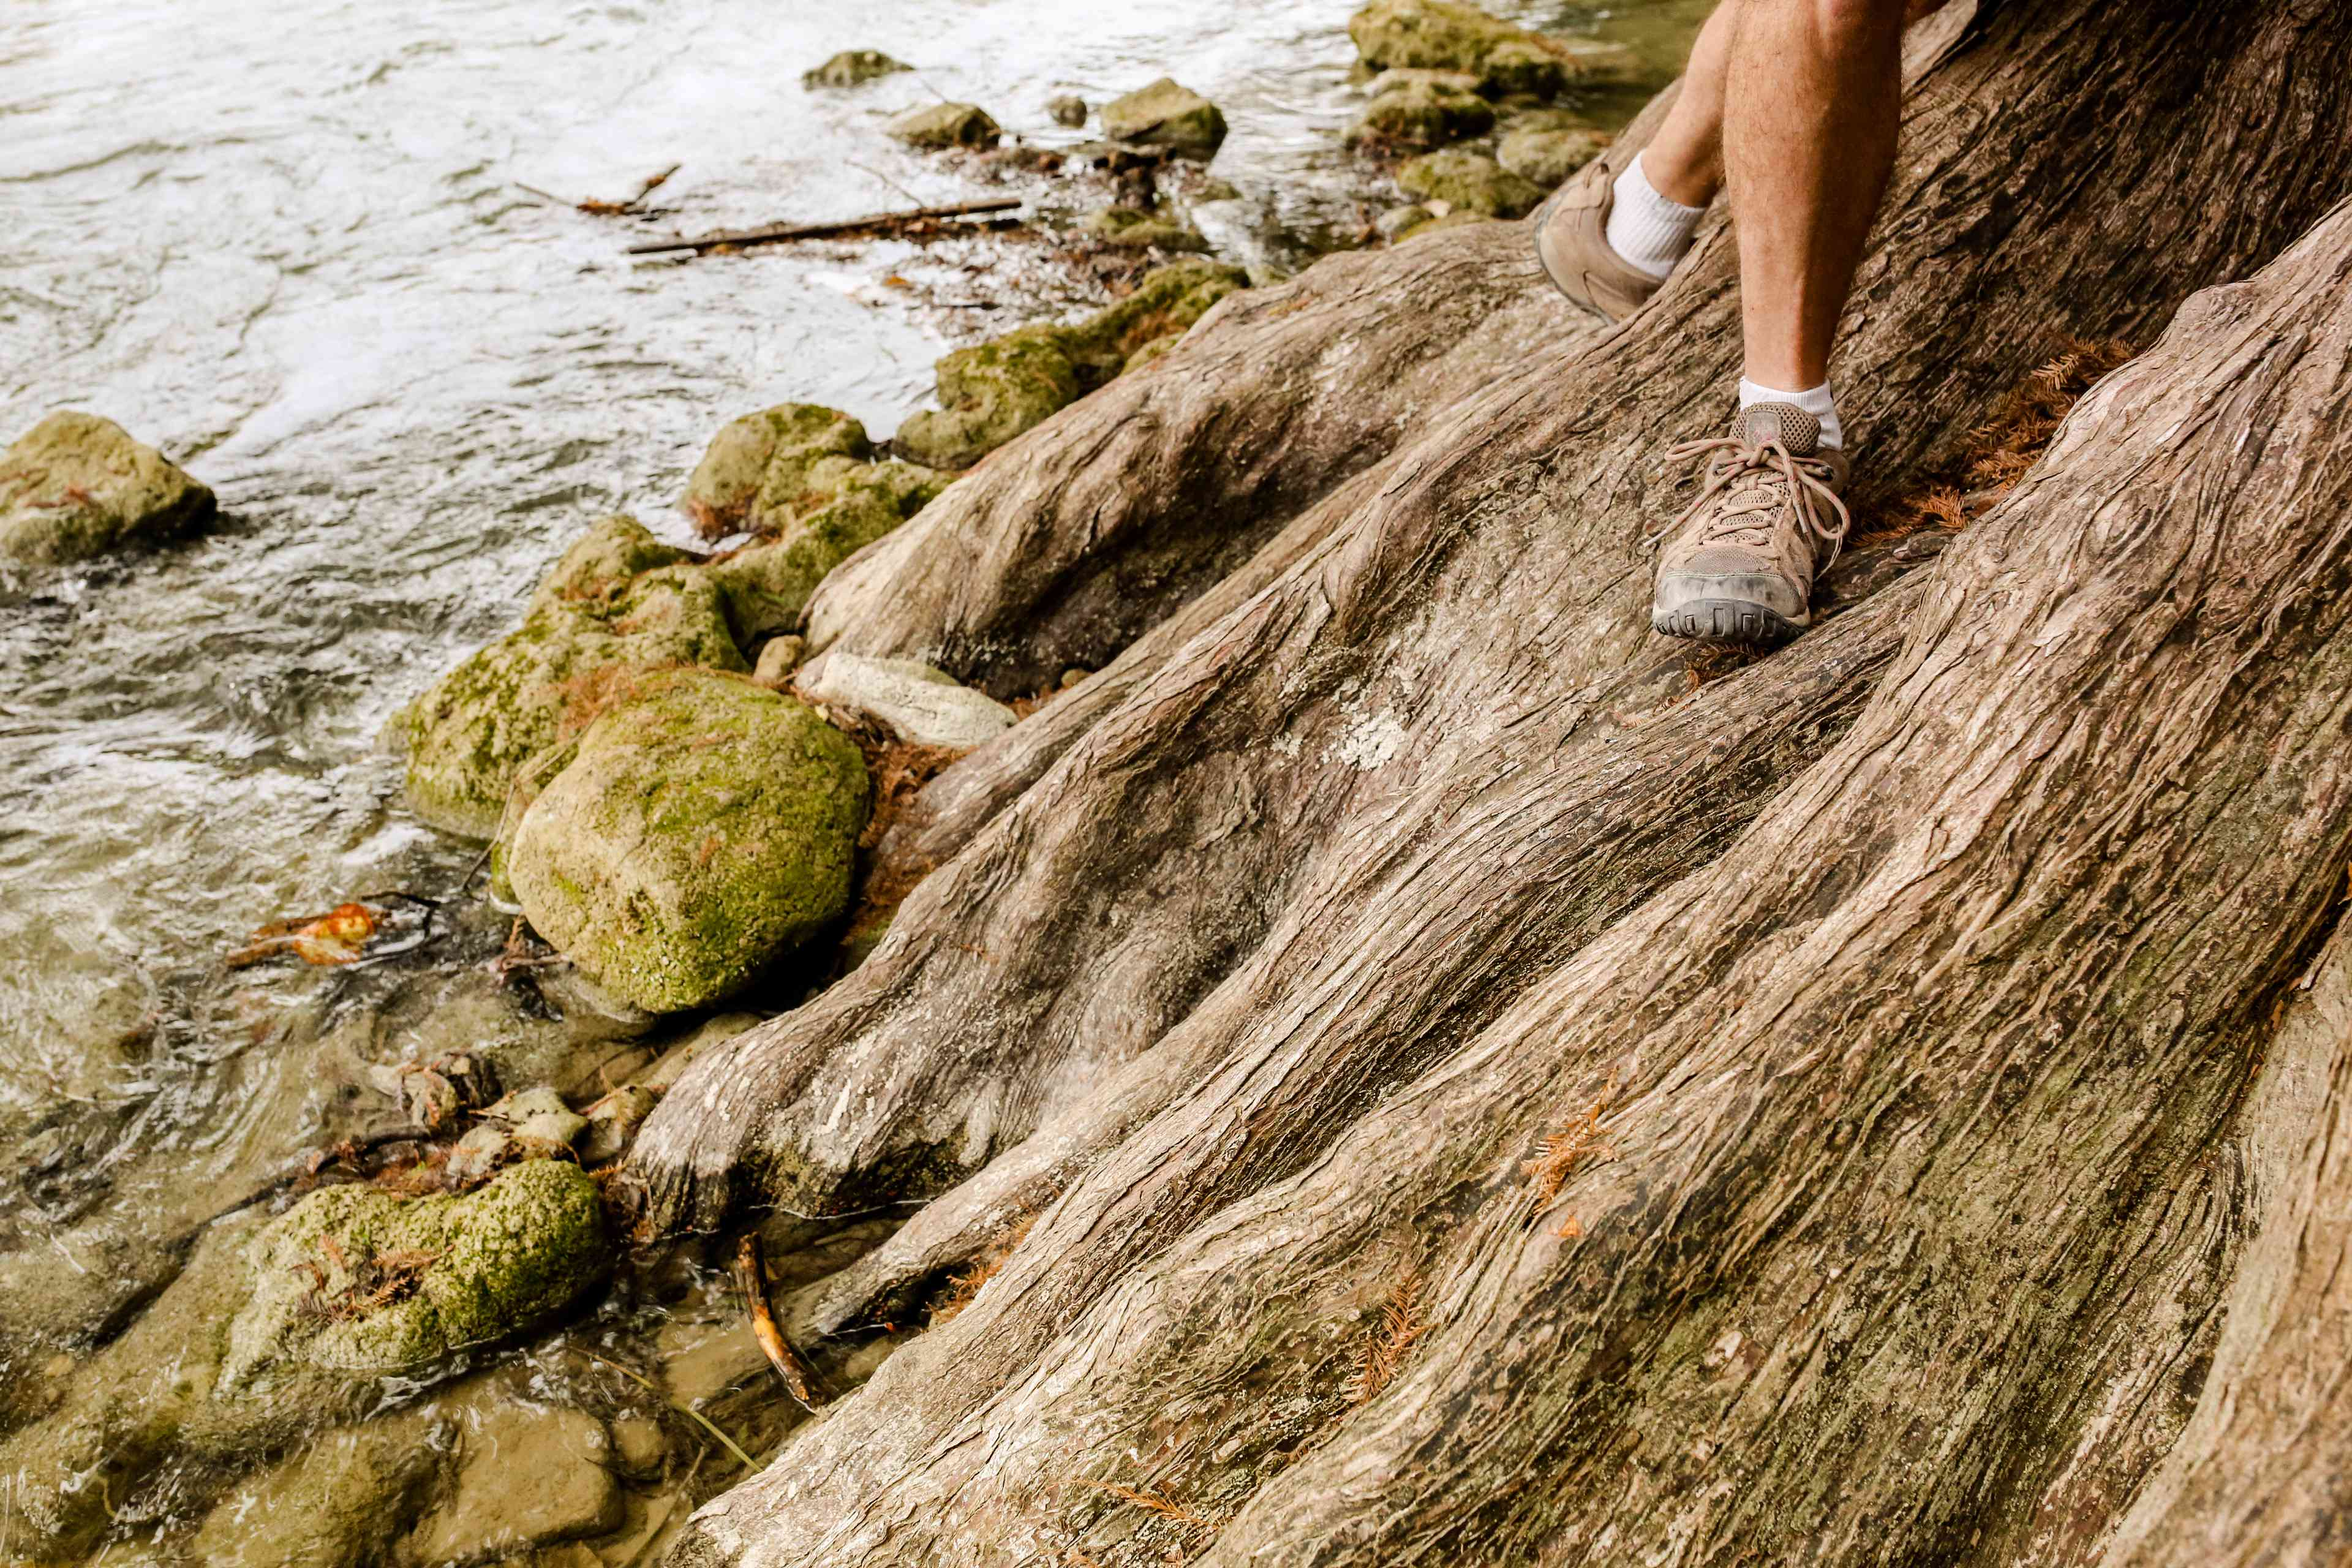 Someone in hiking shoes walking on tree roots at Guadalupe River State Park